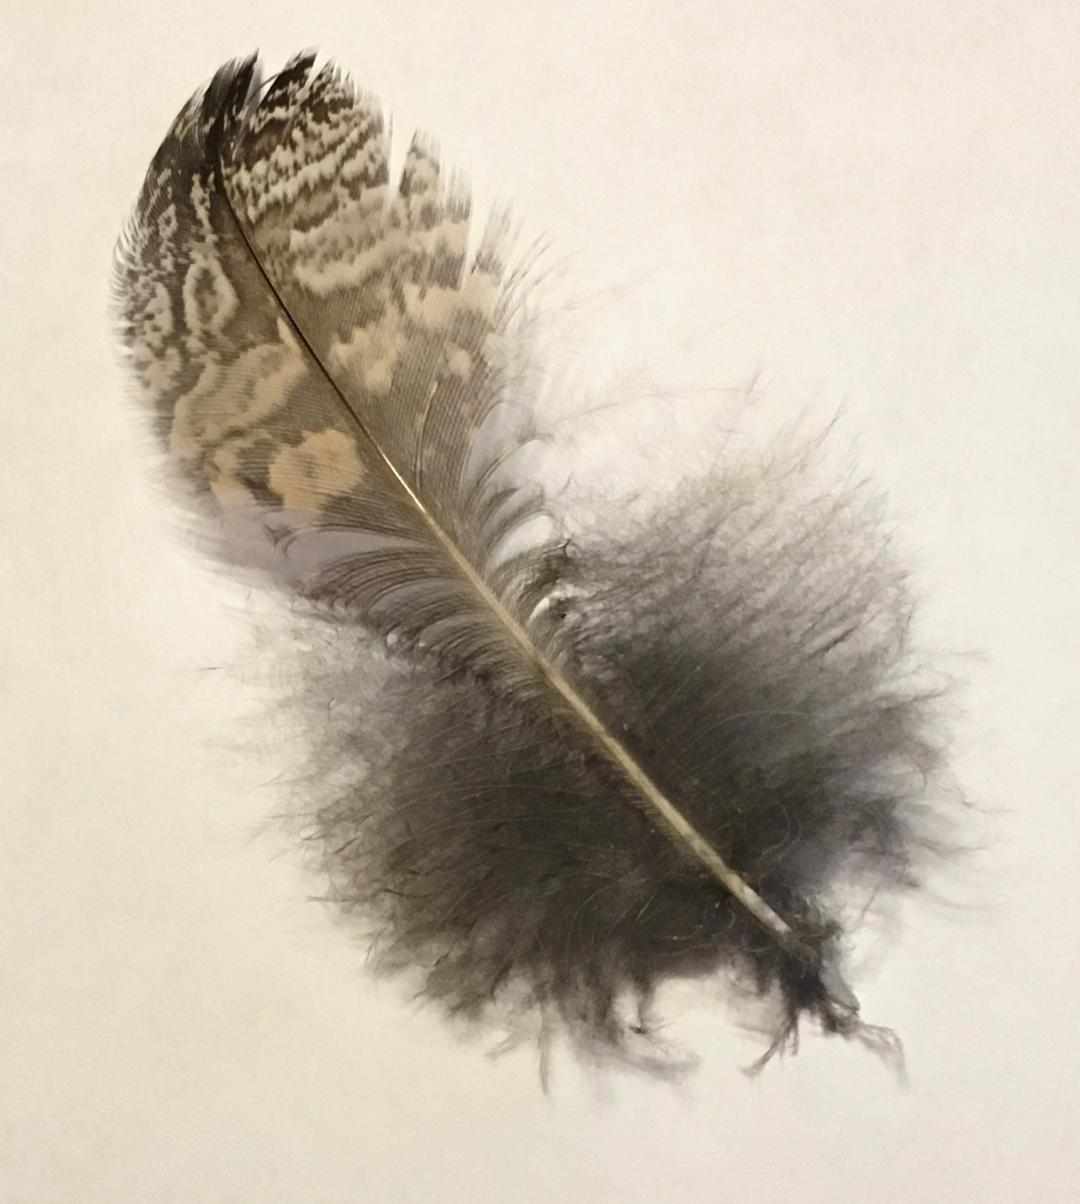 The feather of a Great Horned Owl. Raptors were cheated out of an easy meal.